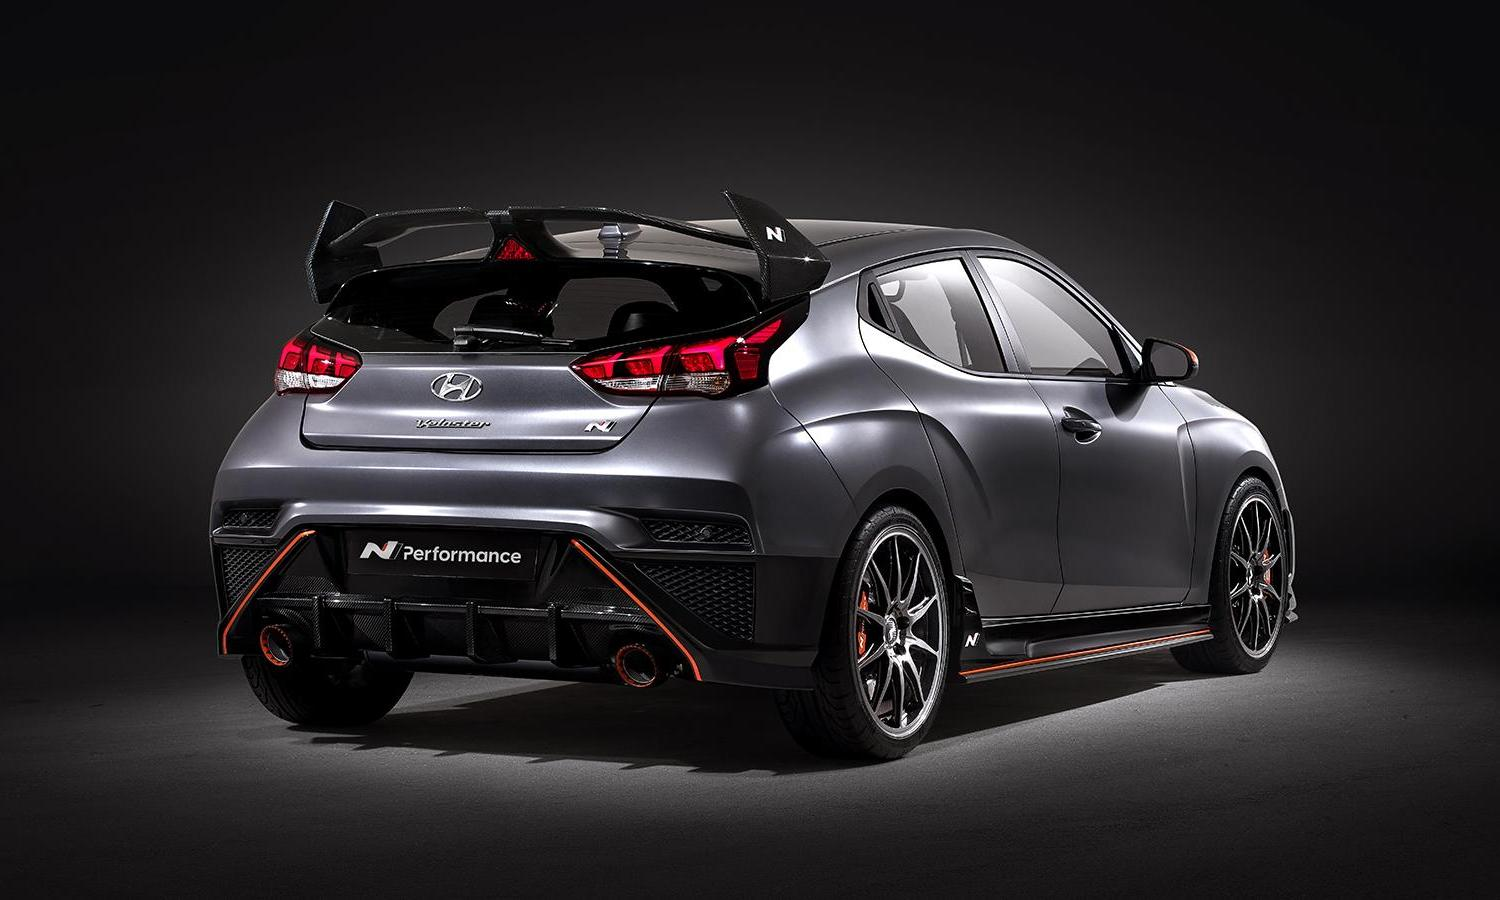 Hyundai Veloster N Performance Concept rear